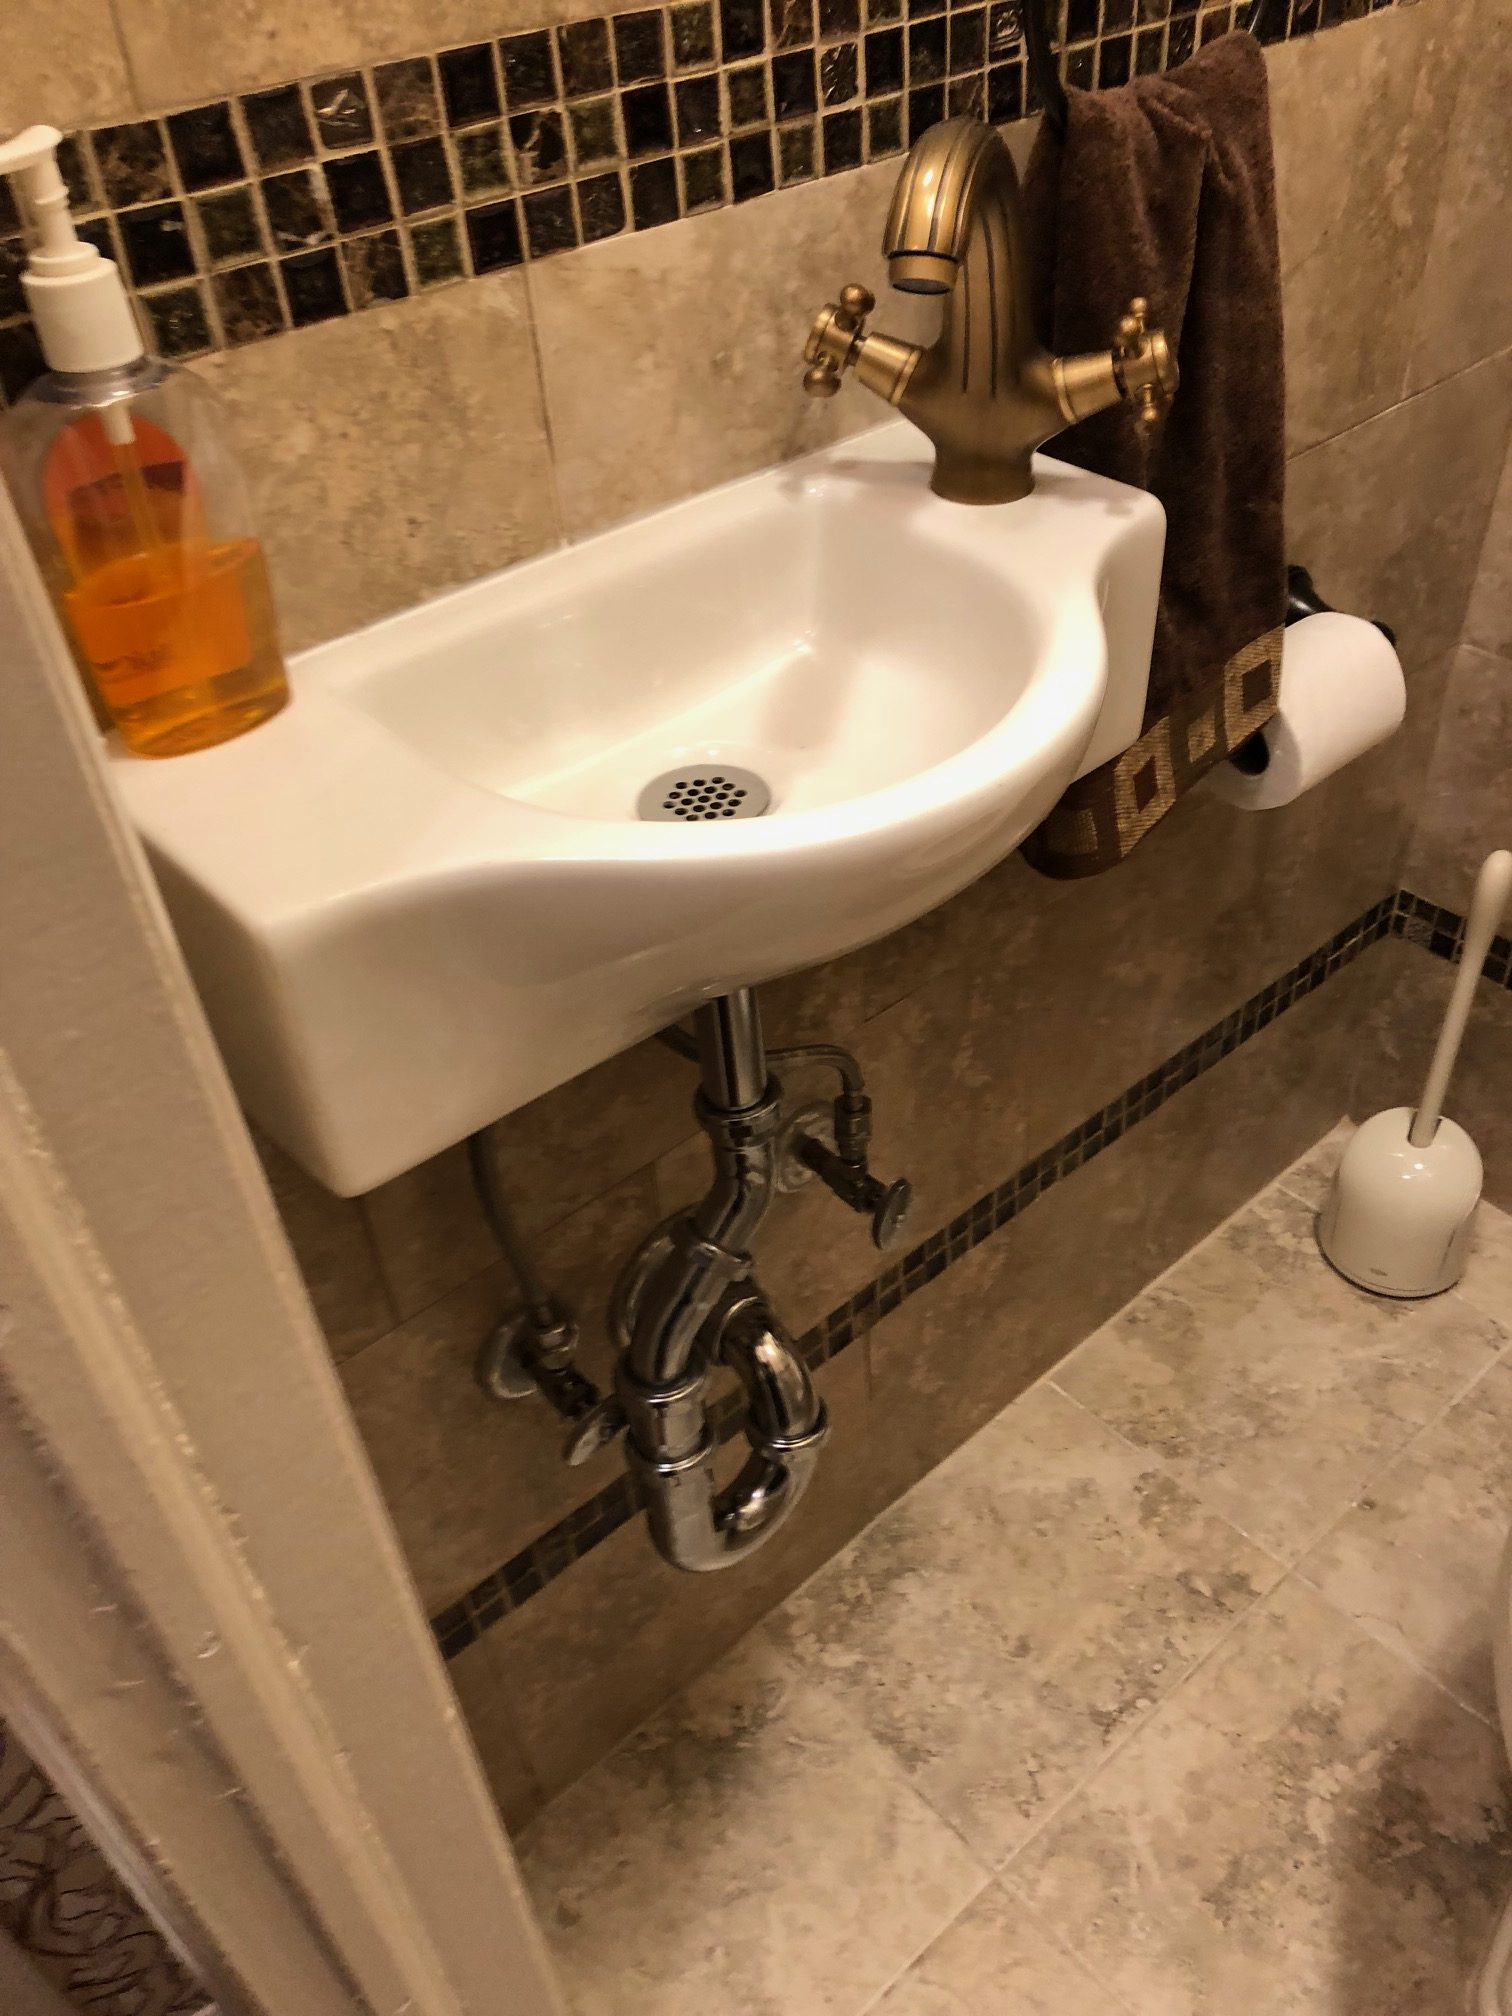 ... Is The Renovation Company Of Choice For Long Island And The New York  Tri State Area. In Our Most Recent Project , We Renovated This Homeu0027s  Bathroom ...